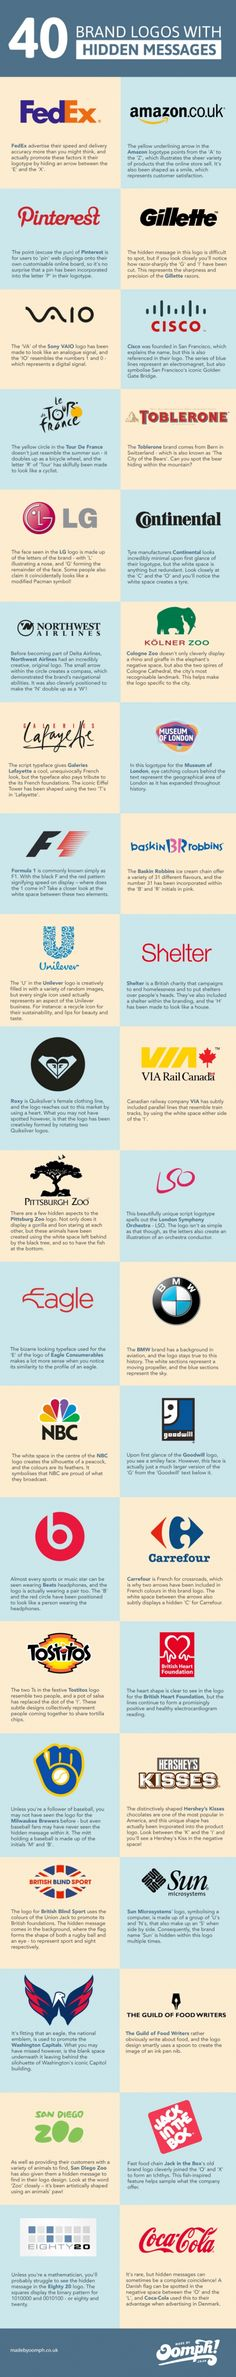 40 Logos With Hidden Messages